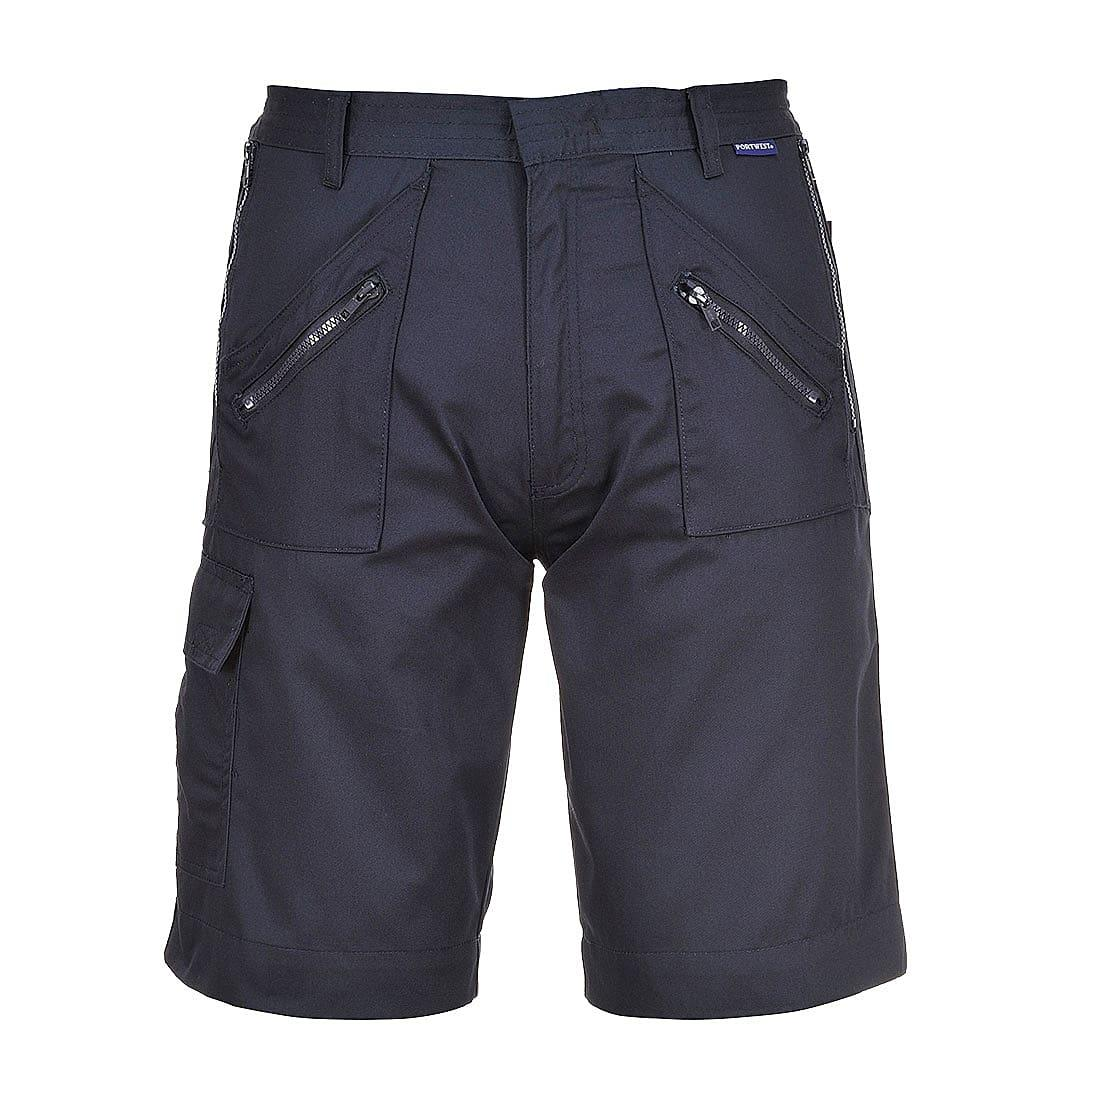 Portwest Action Shorts in Navy (Product Code: S889)